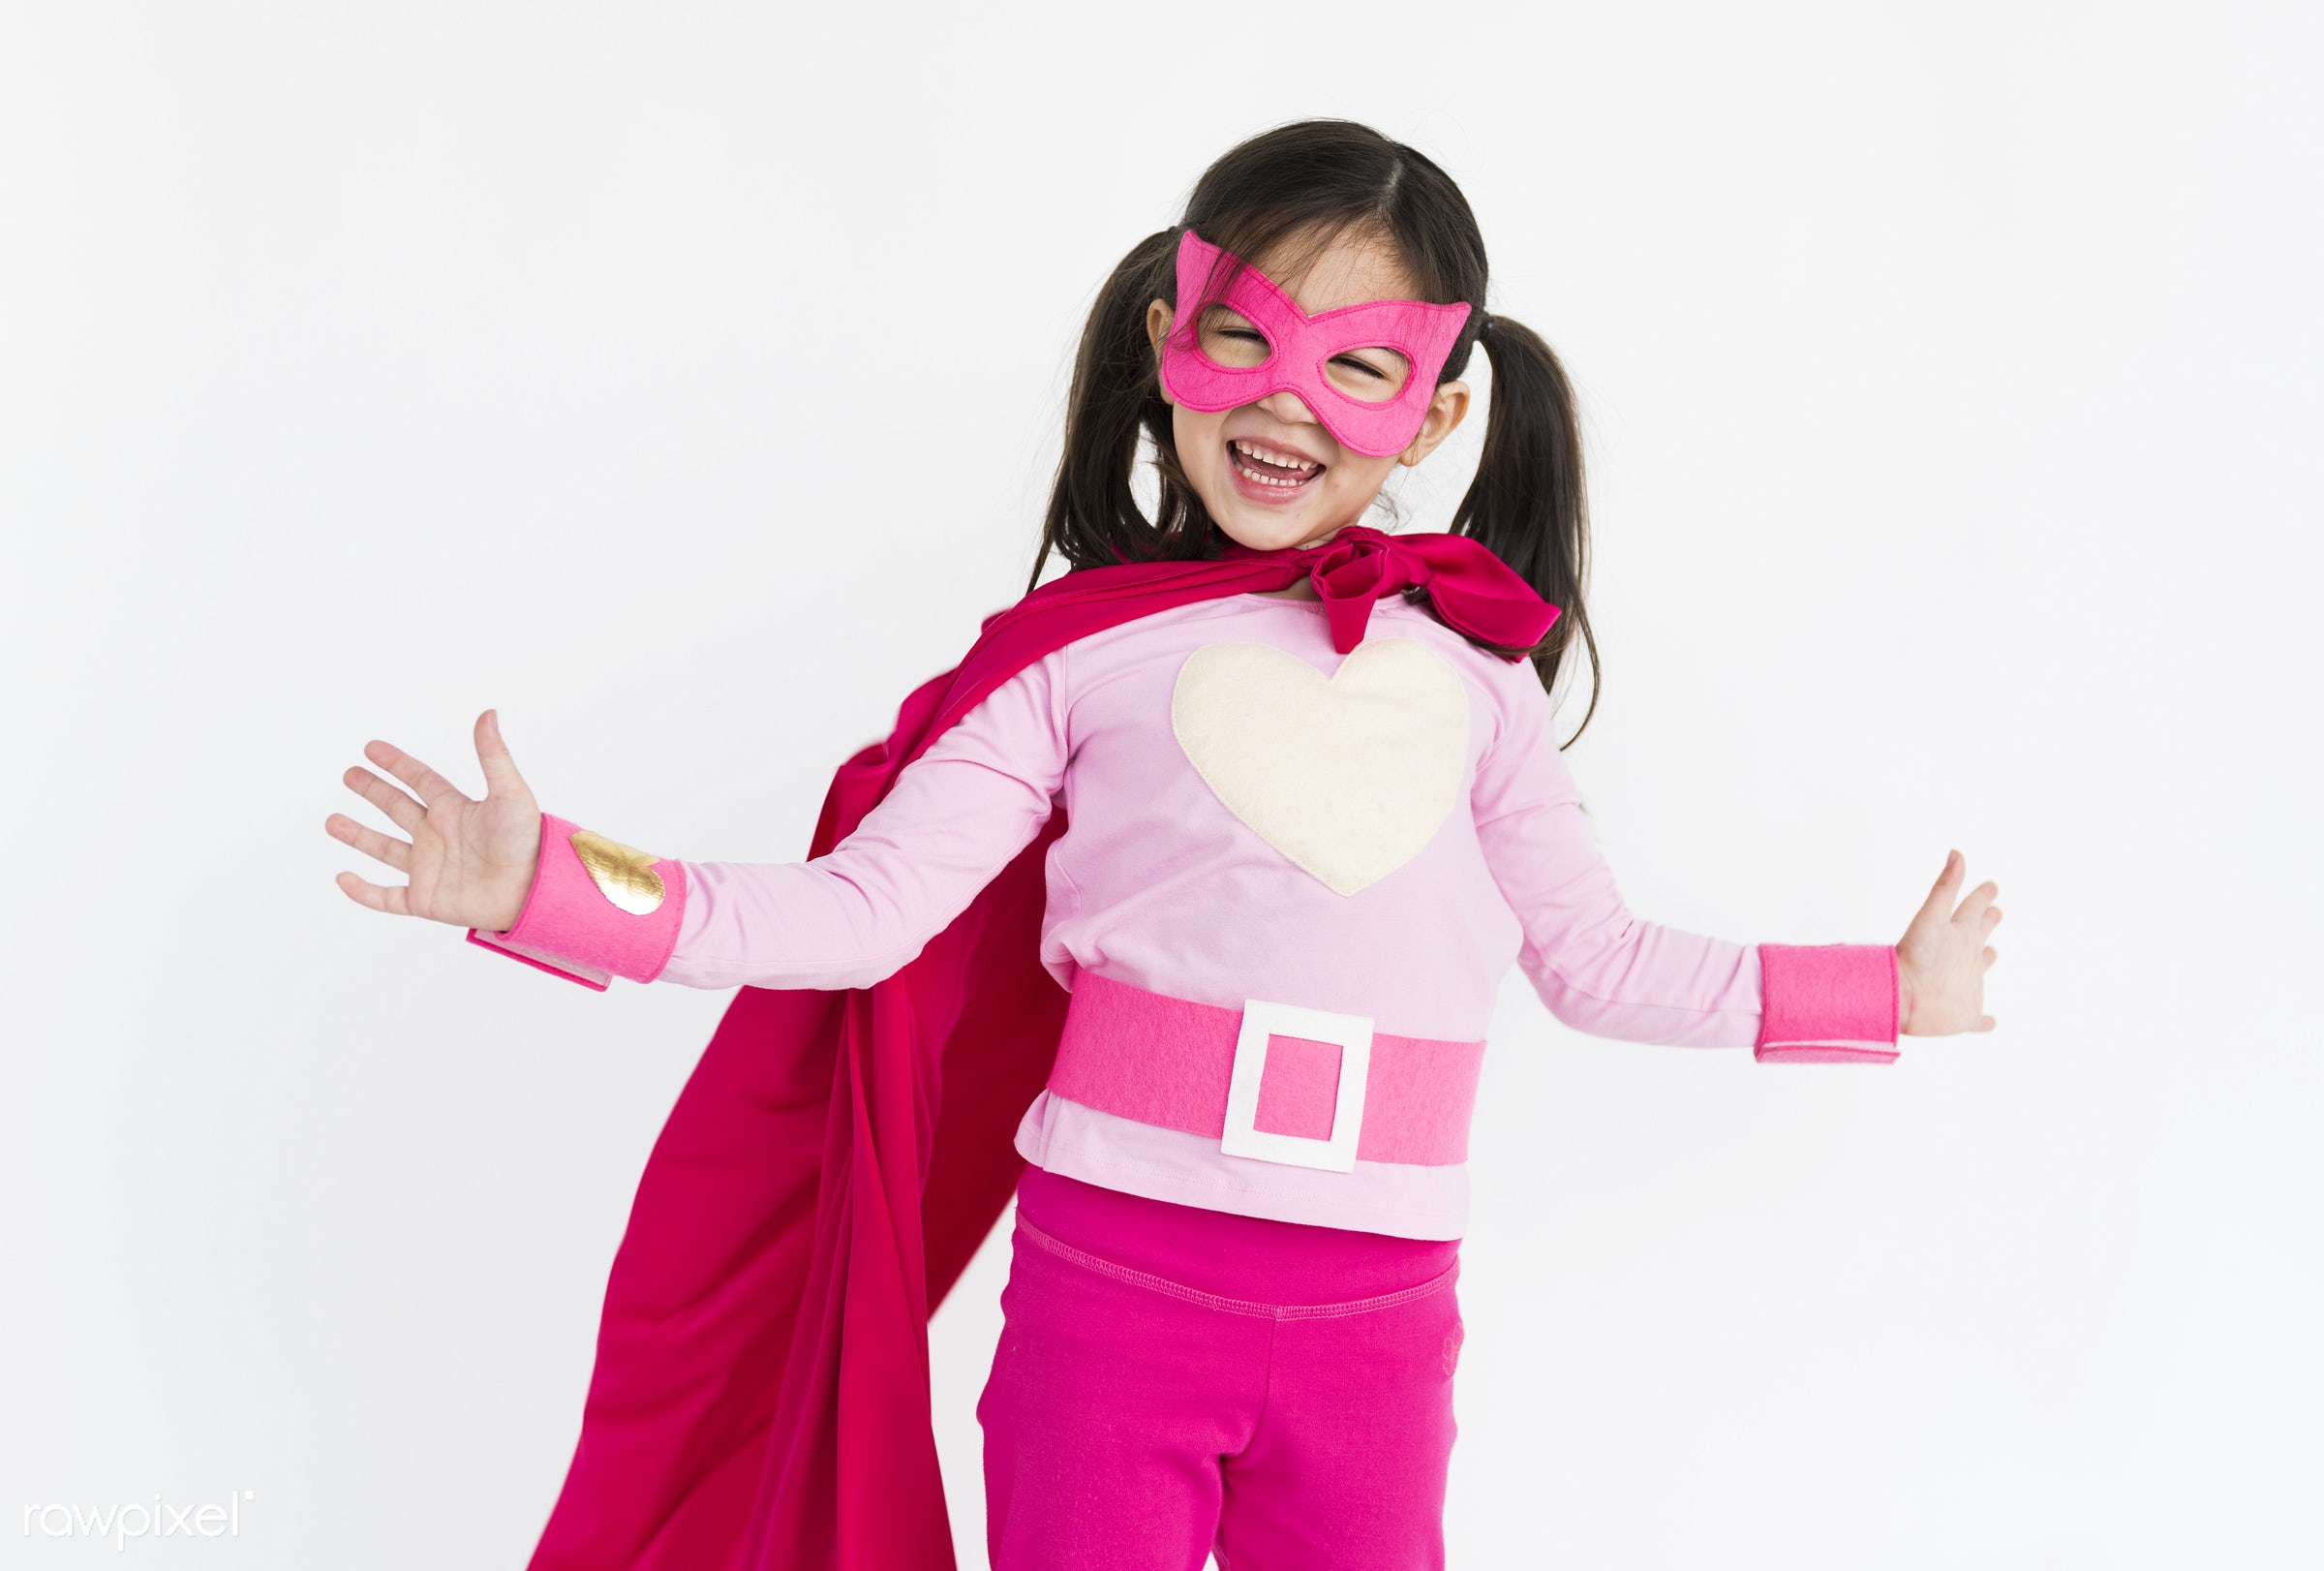 alone, asian, cheerful, child, children, costume, girl, isolated, kid, one, playful, smiling, superhero, young, youth